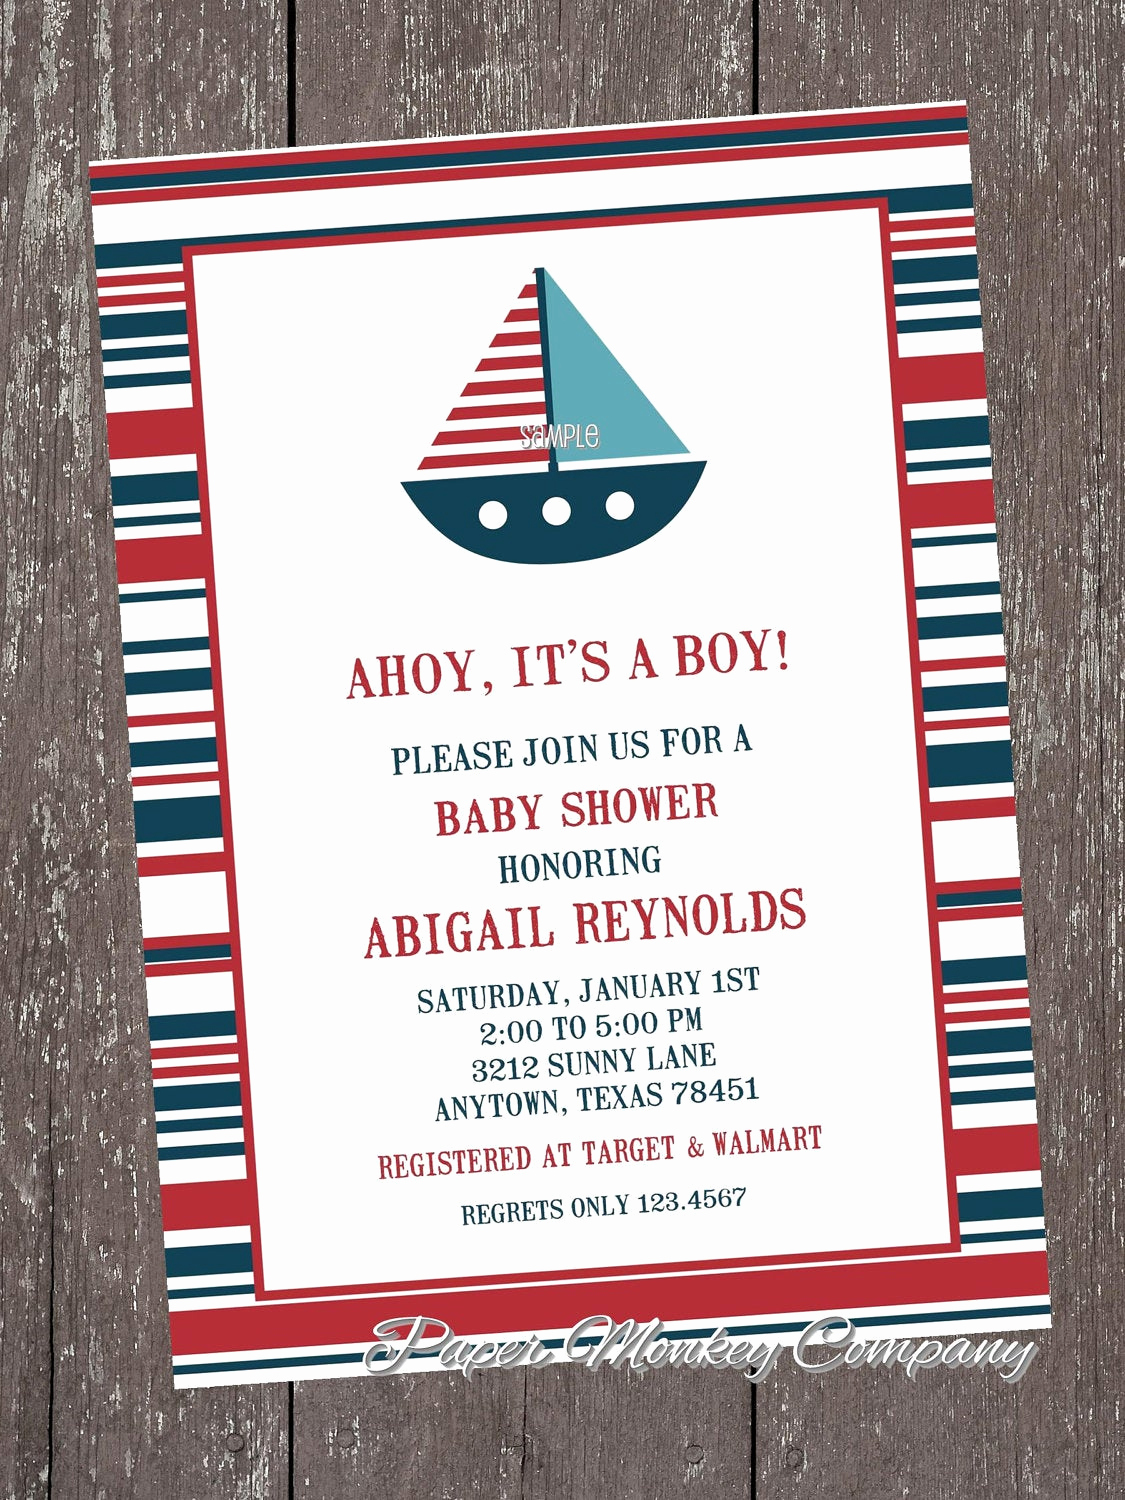 Nautical theme Baby Shower Invitation Unique Nautical Sailboat Baby Shower Invitations